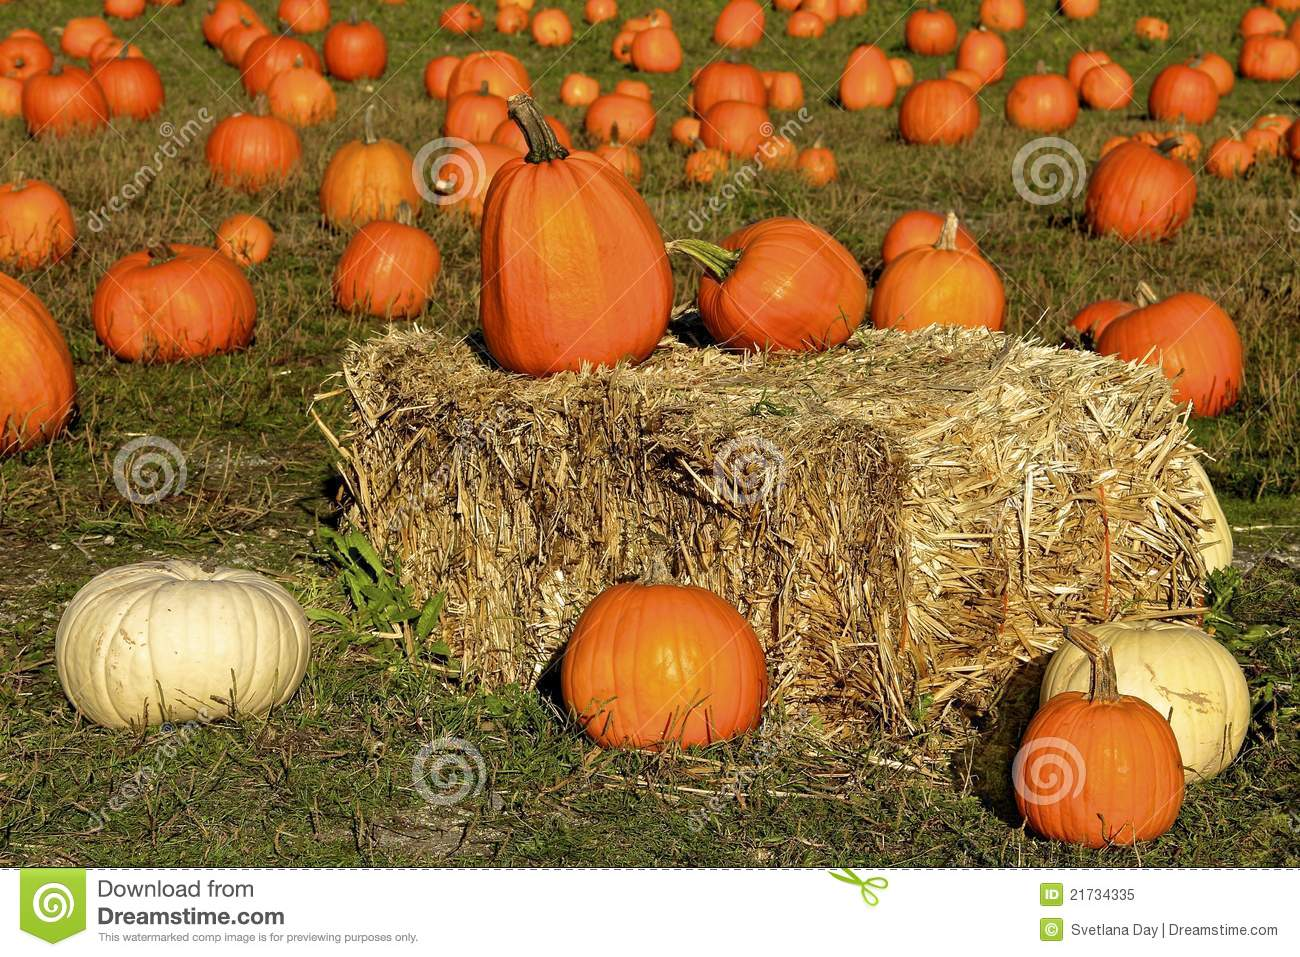 Pumpkins on a hay bale